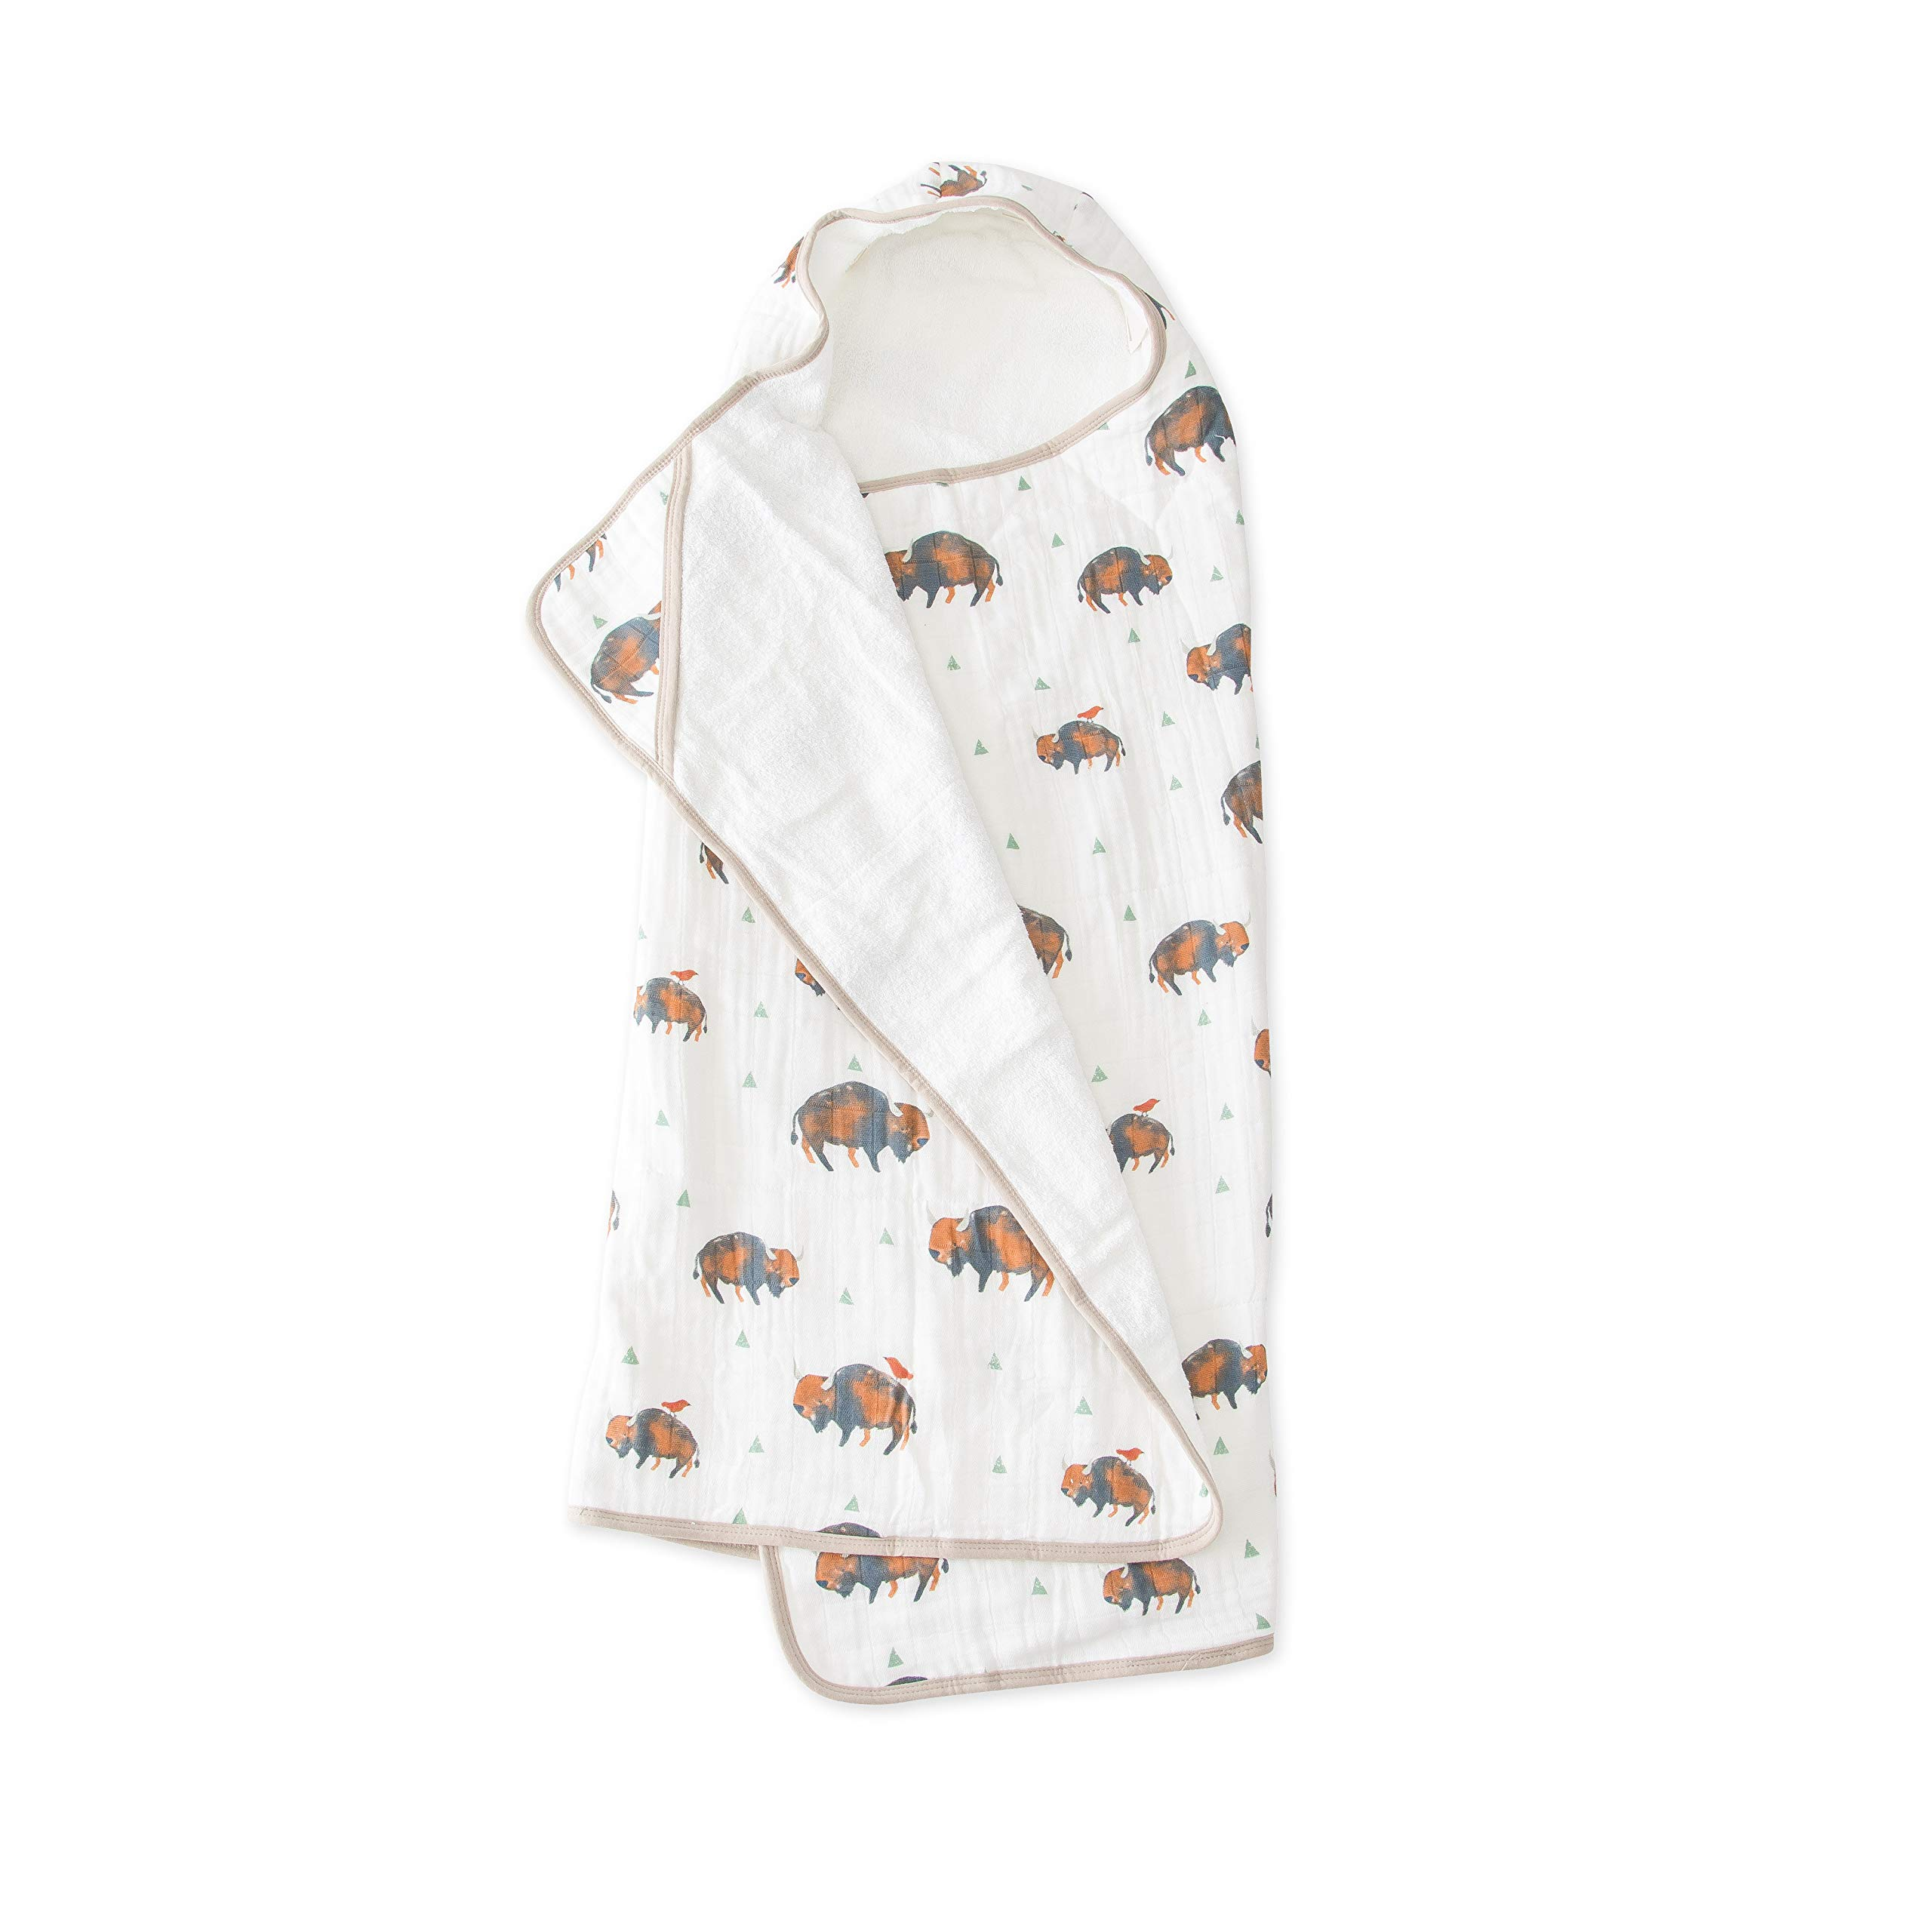 Little Unicorn Large Cotton Hooded Towel - Bison by Little Unicorn